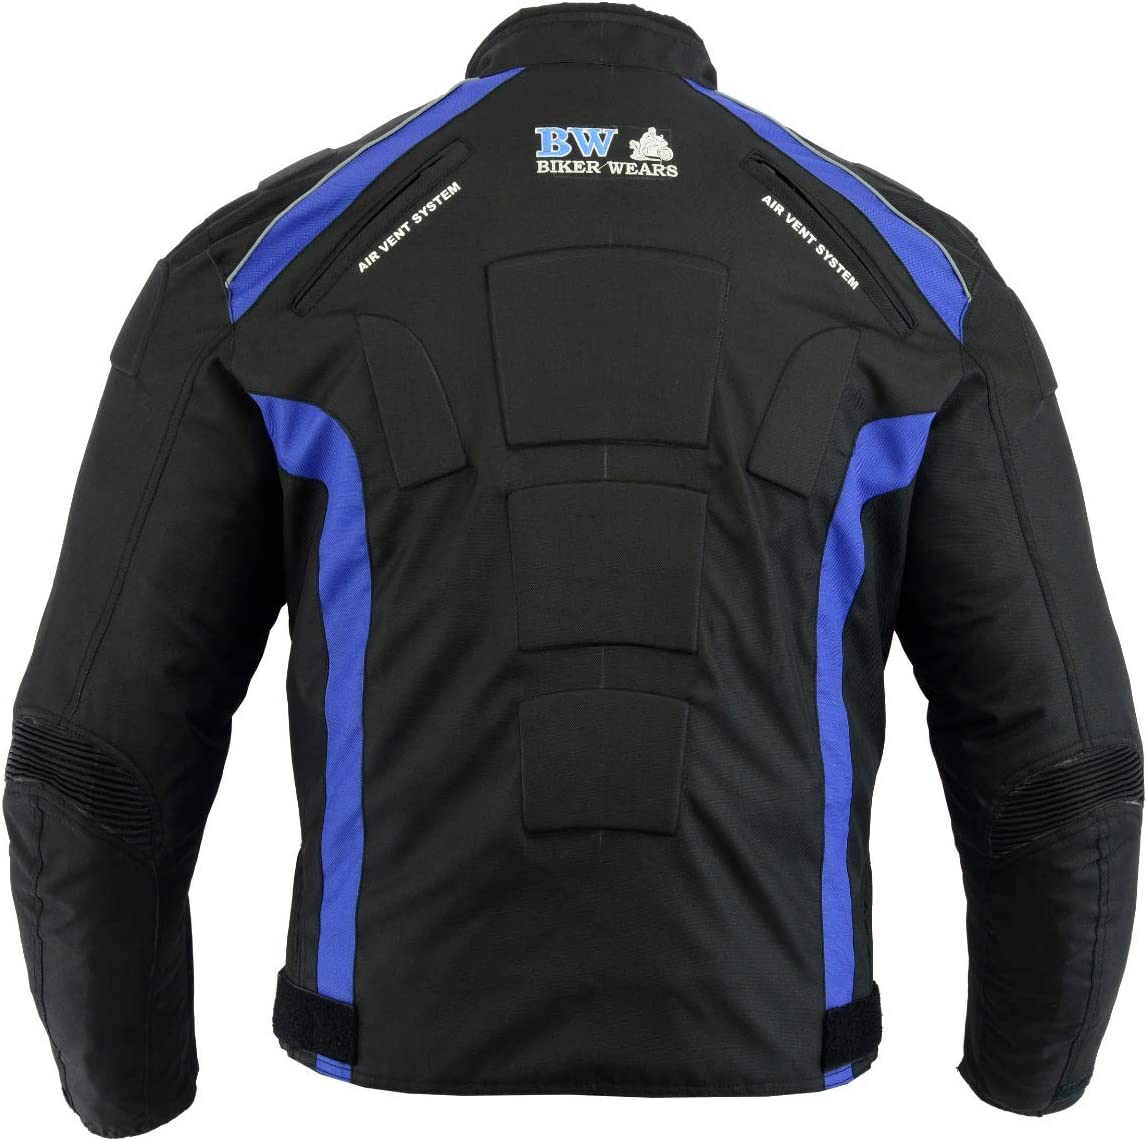 Mens Motorbike Motorcycle Waterproof Suit Biker Trousers and Jacket with Removable Armour